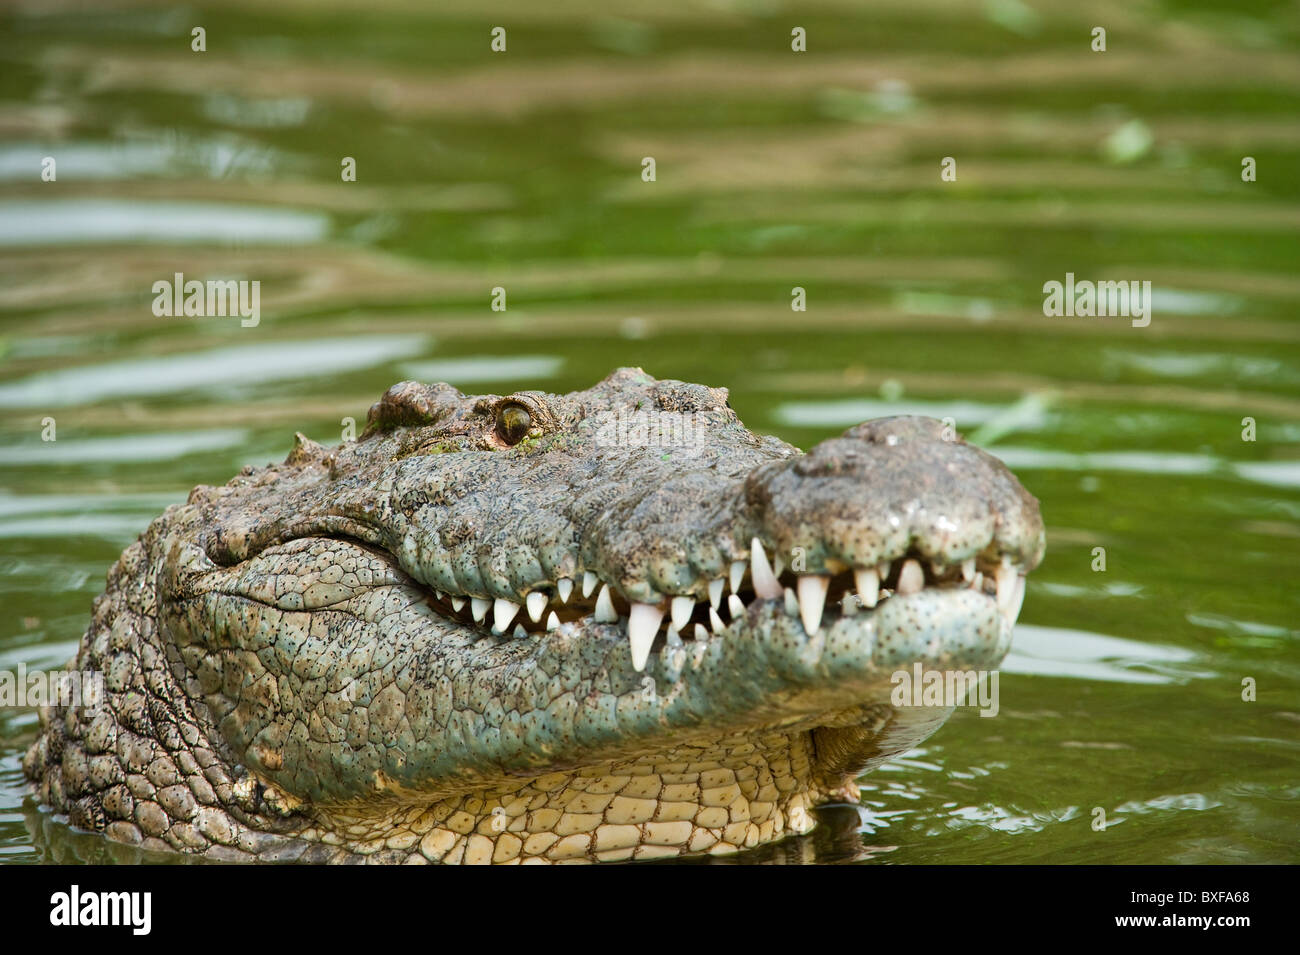 d758386d5fa4 Nile Crocodile (Crocodylus niloticus) looking out from the water. - Stock  Image